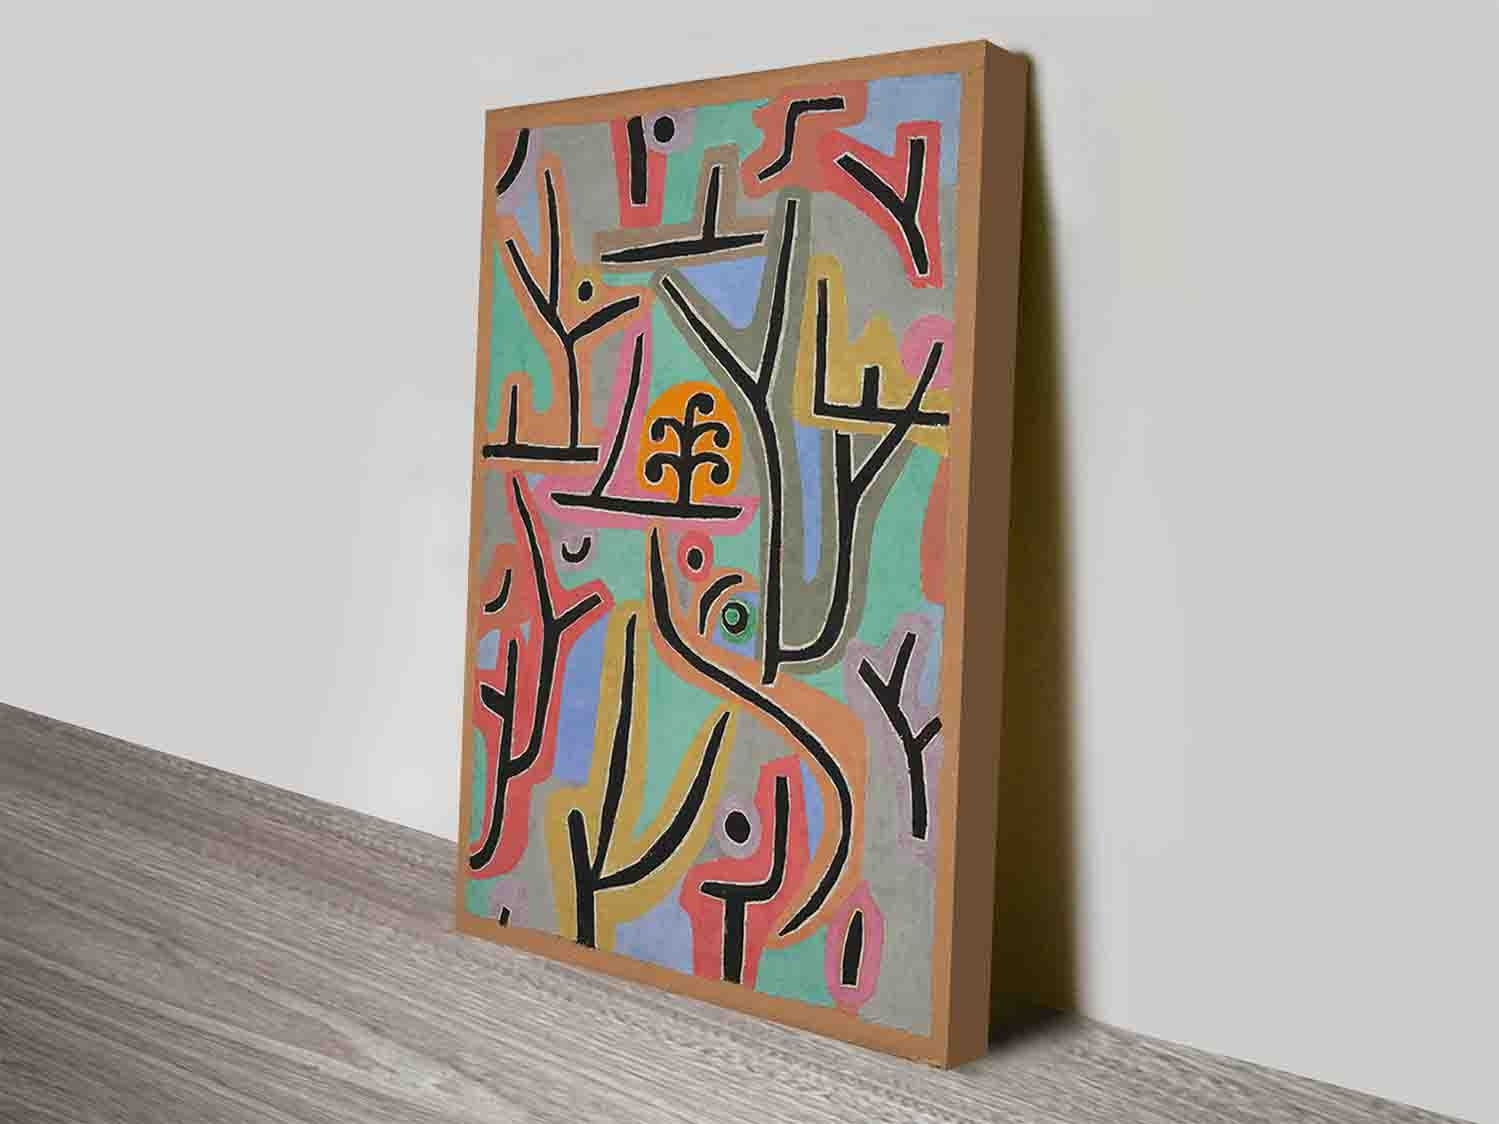 Park Bei Lupaul Klee Modern Artist Discount Wall Art Canvas Prints Pertaining To Most Popular Discount Wall Art (View 18 of 20)